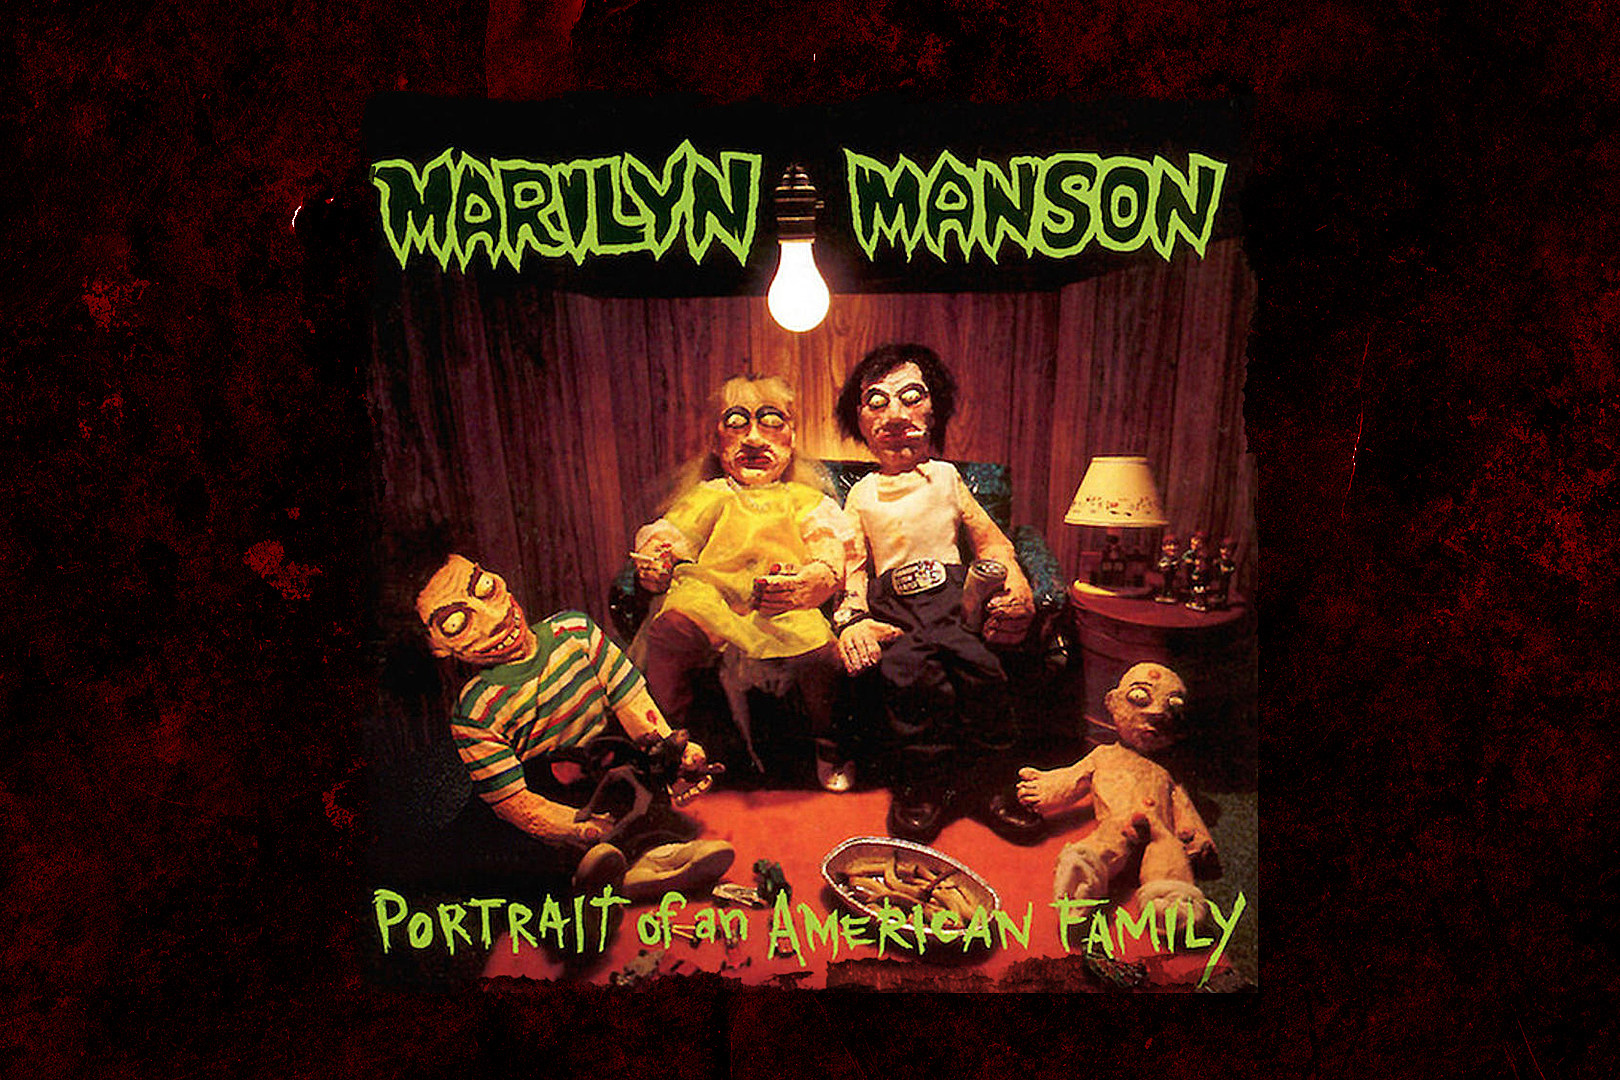 25 Years Ago: Marilyn Manson Issues 'Portrait of an American Family'